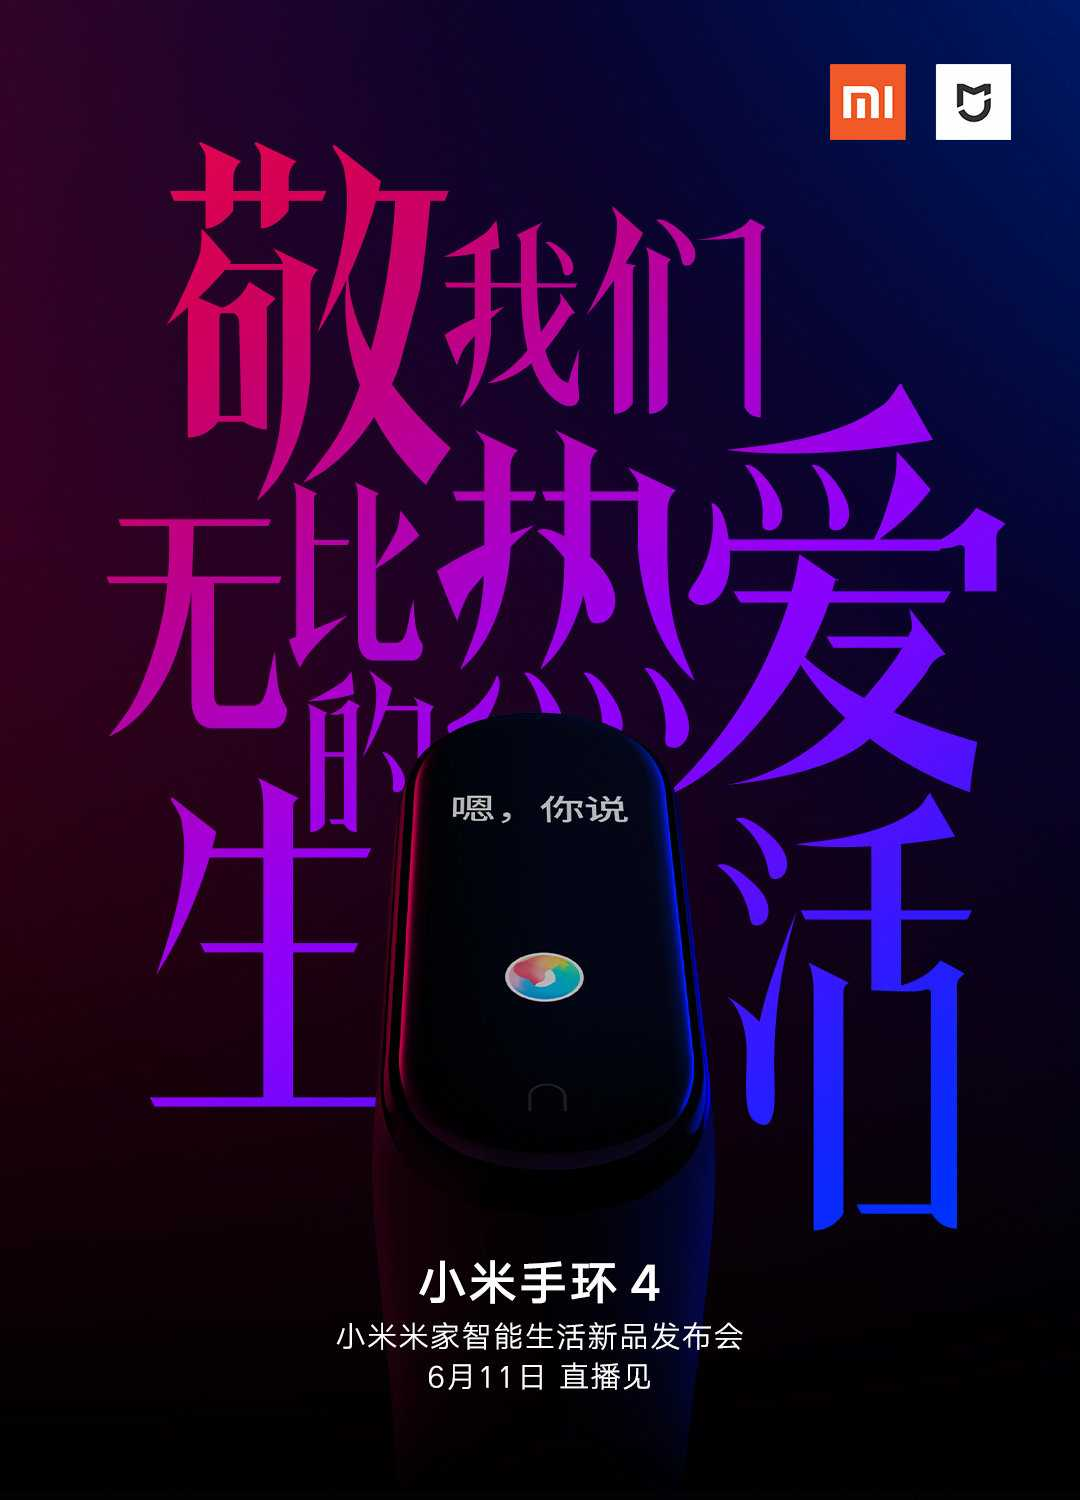 Mi Band 4 Launch Poster